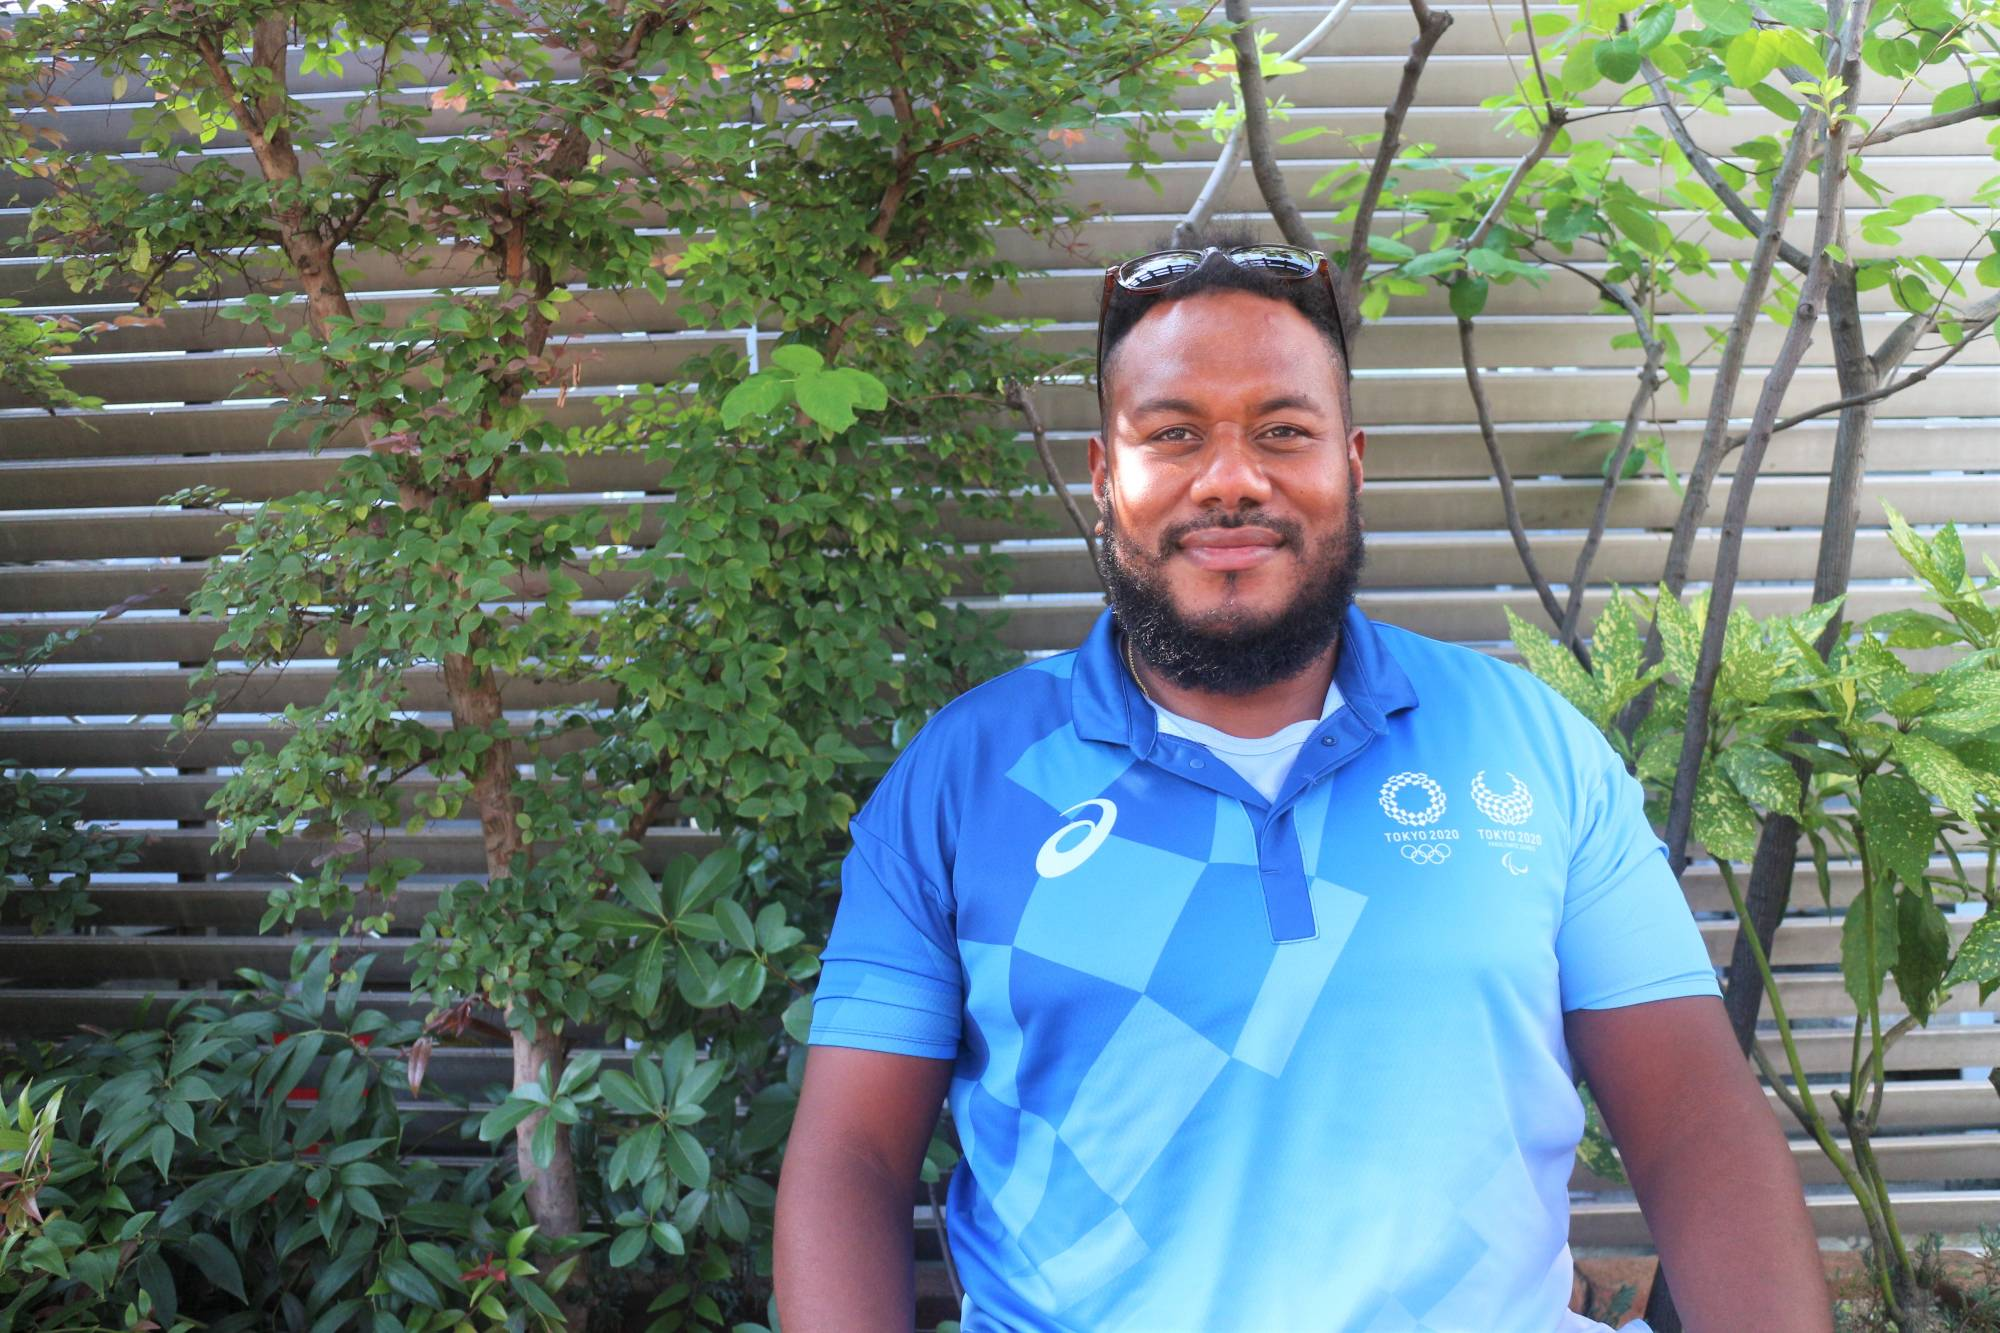 Courtside counsel: Mosese Rarasea was able to meet some of his sports heroes as a volunteer at this summer's Olympics. | HARUKA MURAYAMA